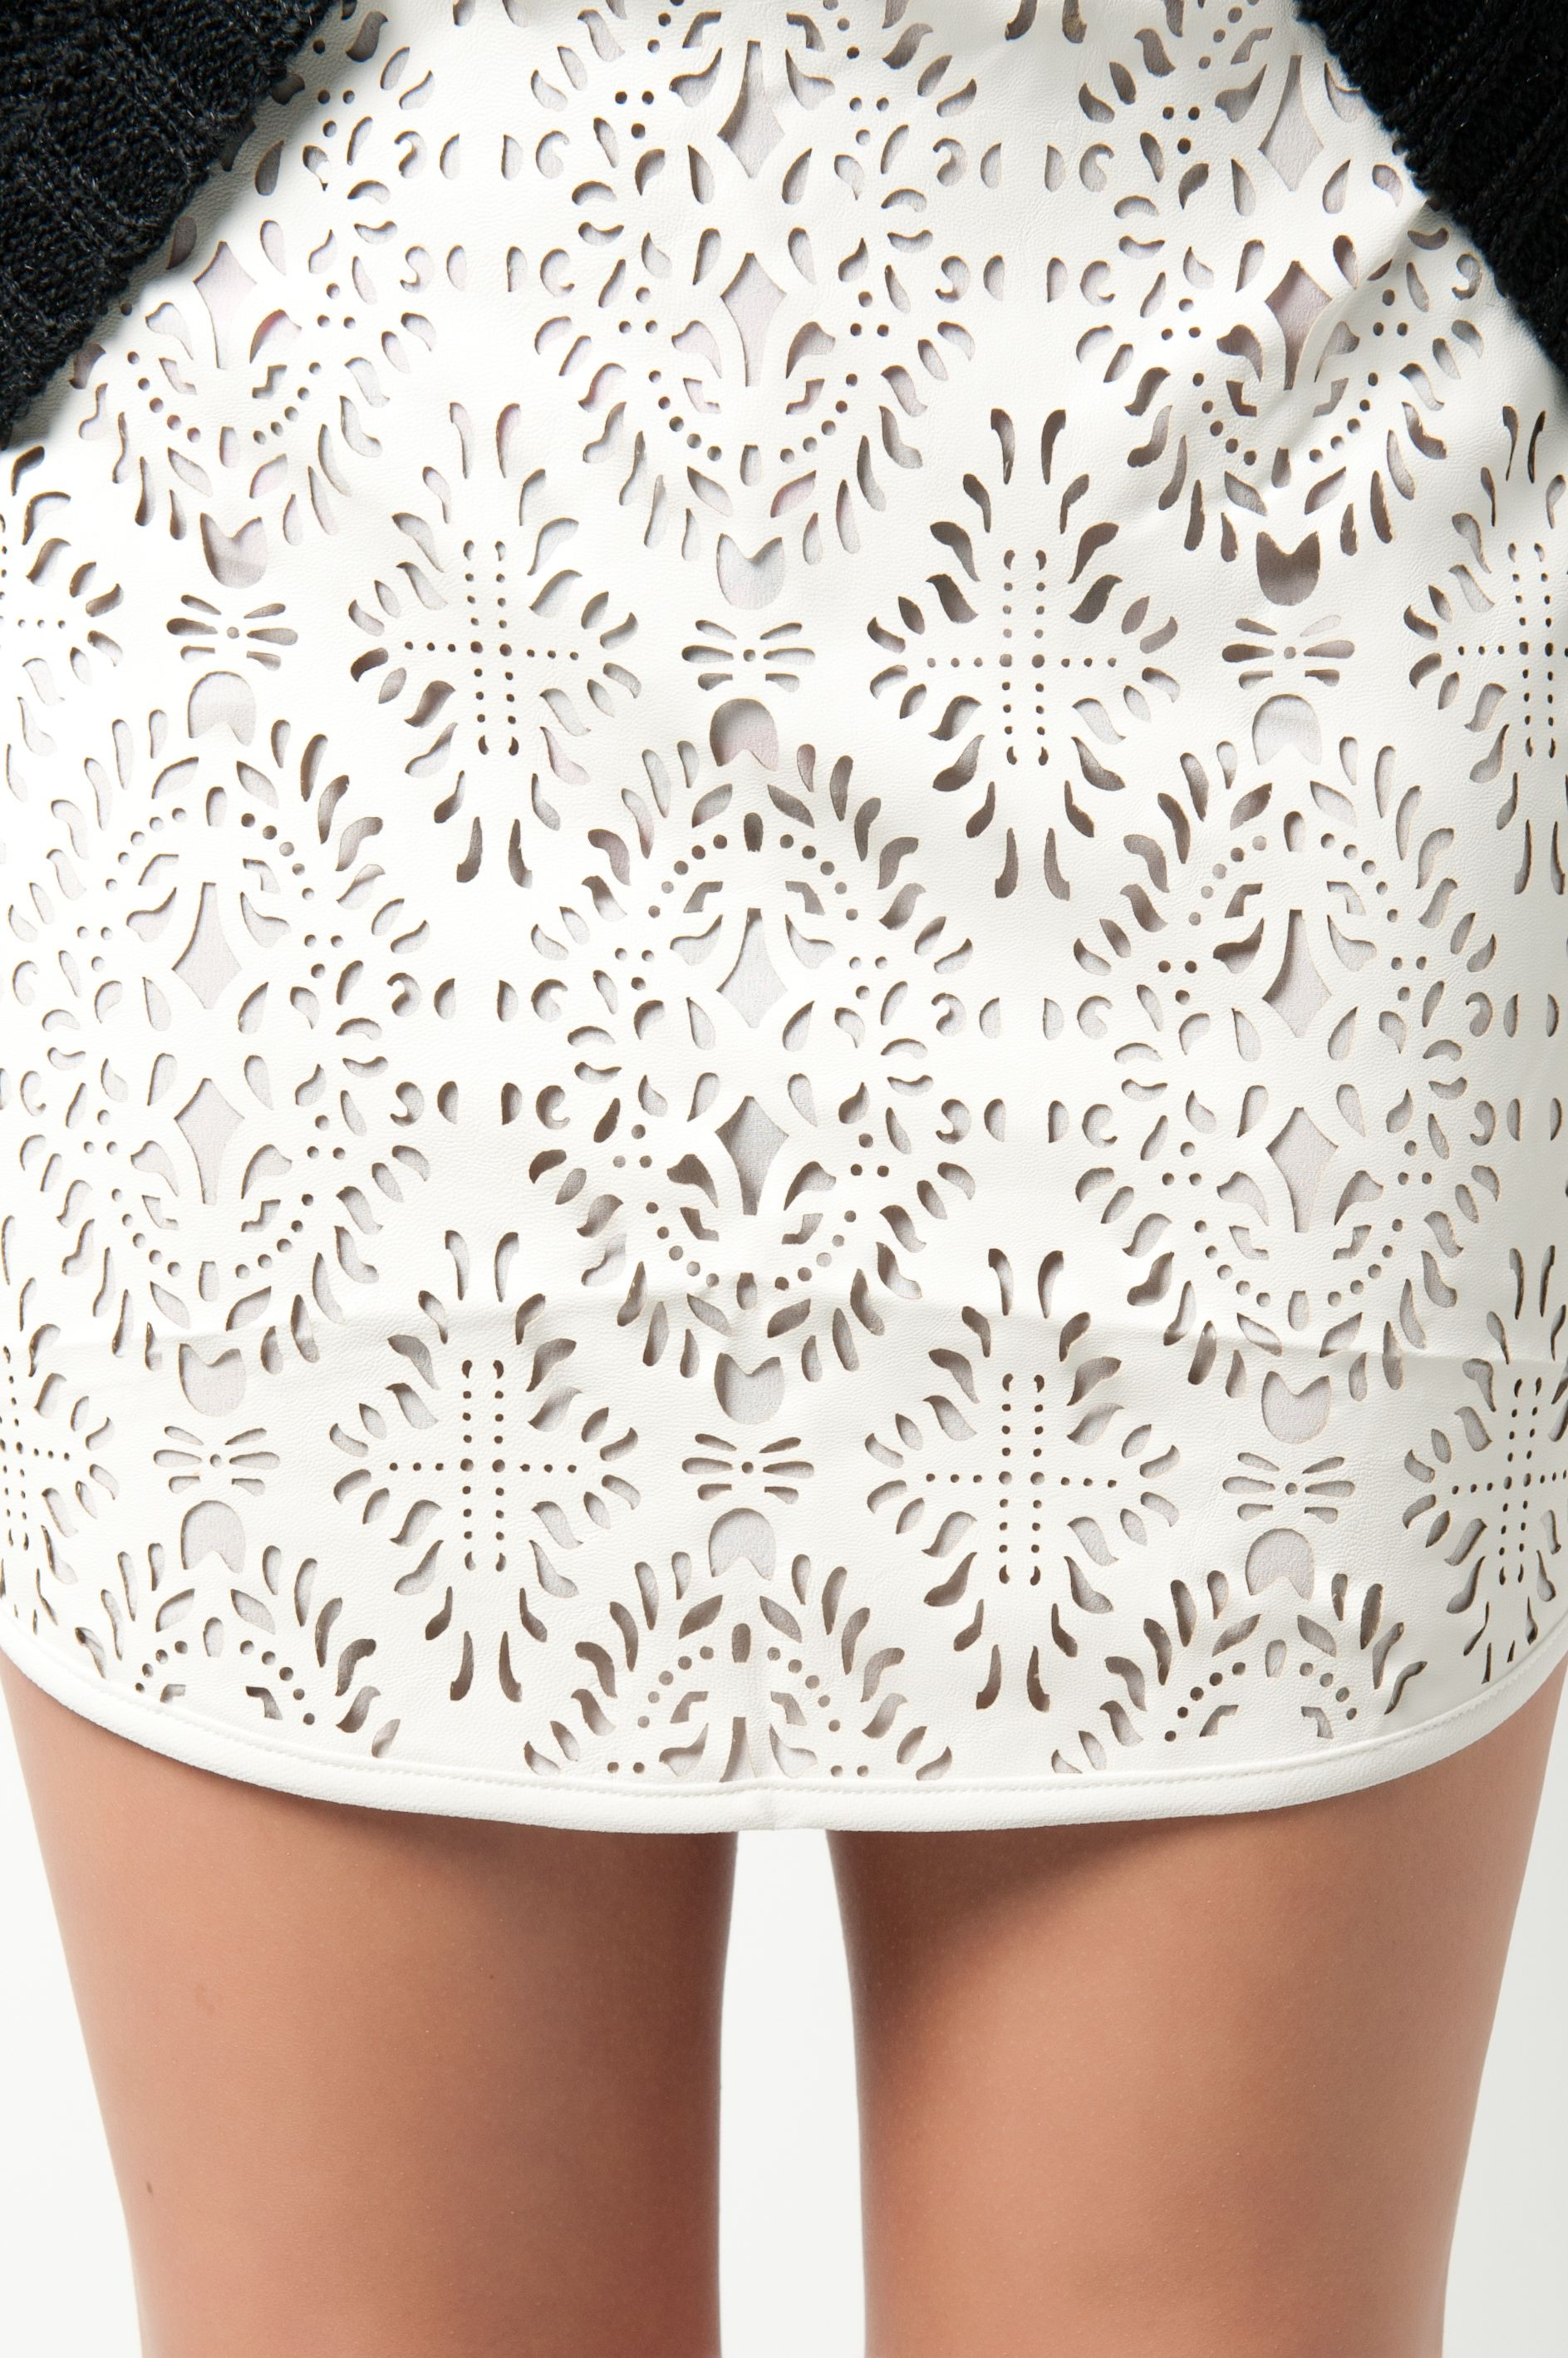 b83b62c392bb Laser Cut Leather Dress - ornate surface pattern & white textures; laser cut  fashion details